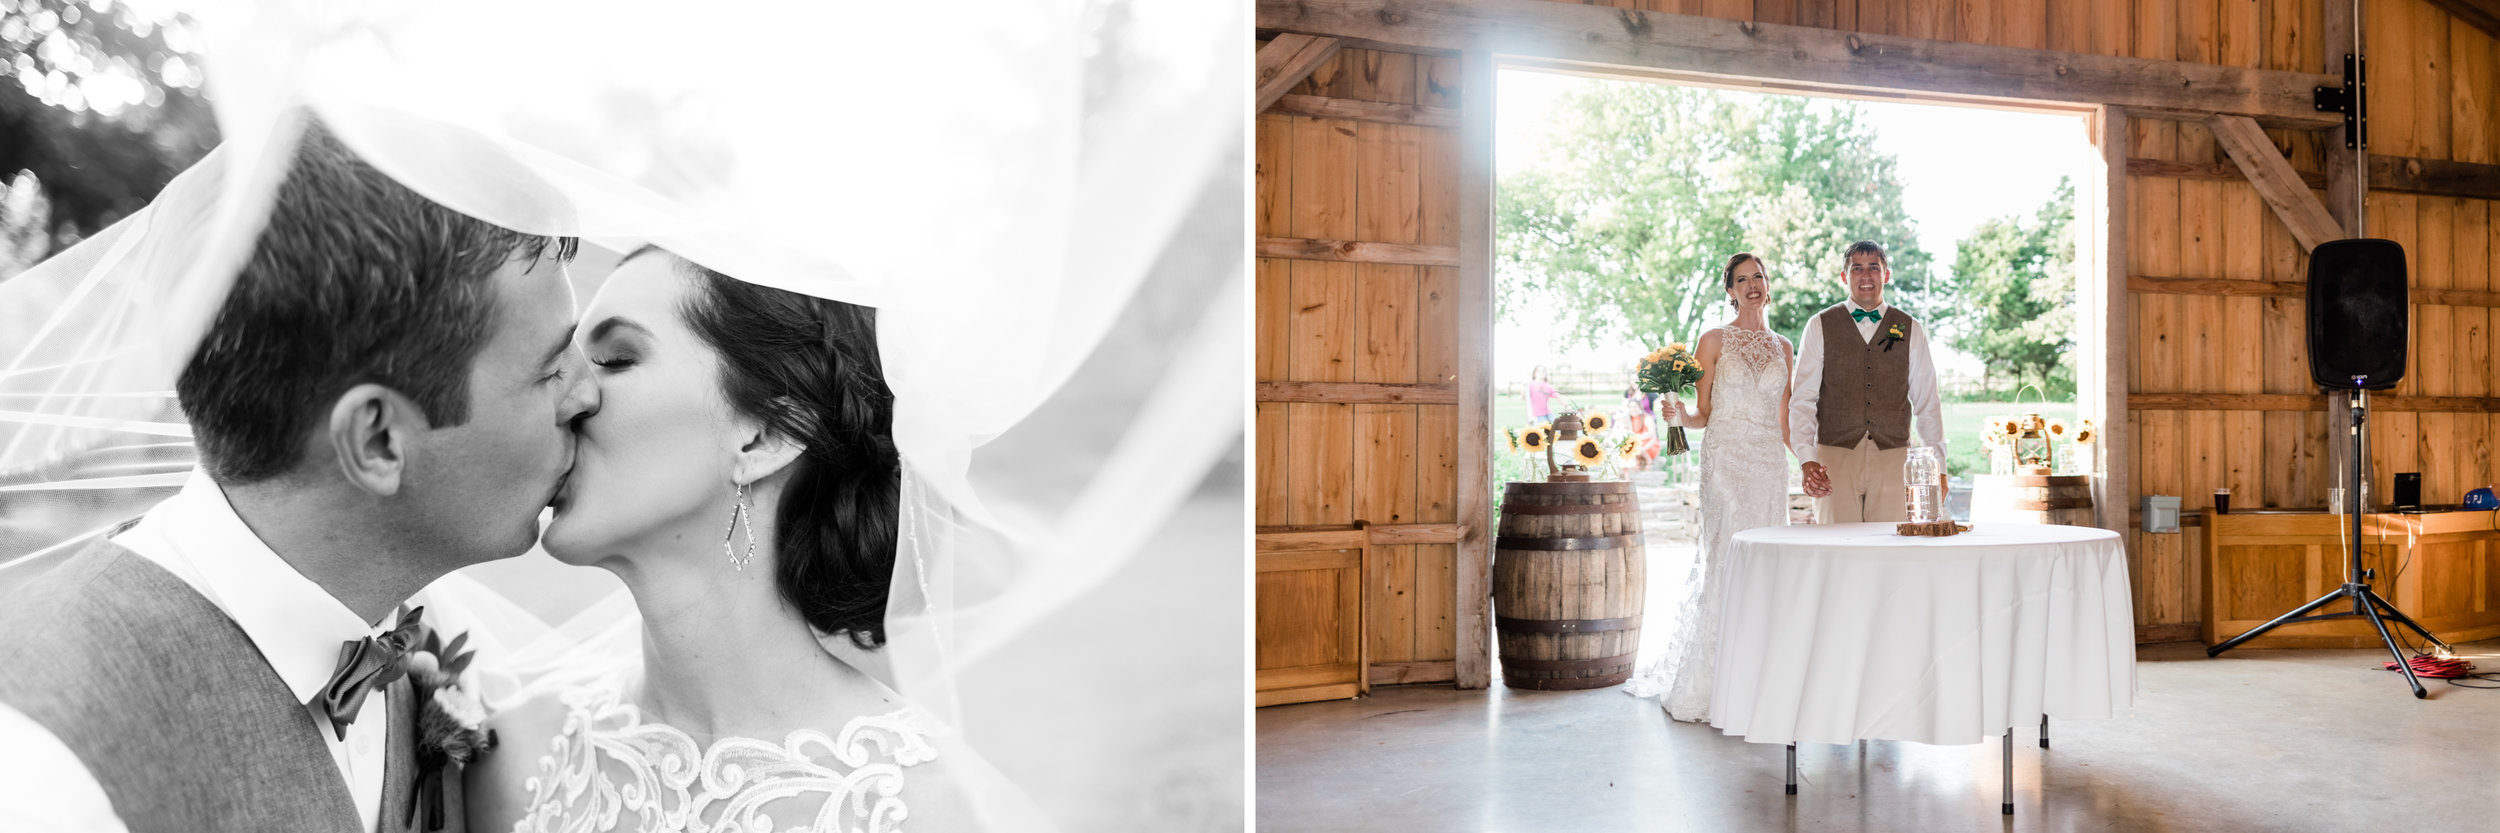 Bentonville Wedding Photographer Holland Barn 15.jpg